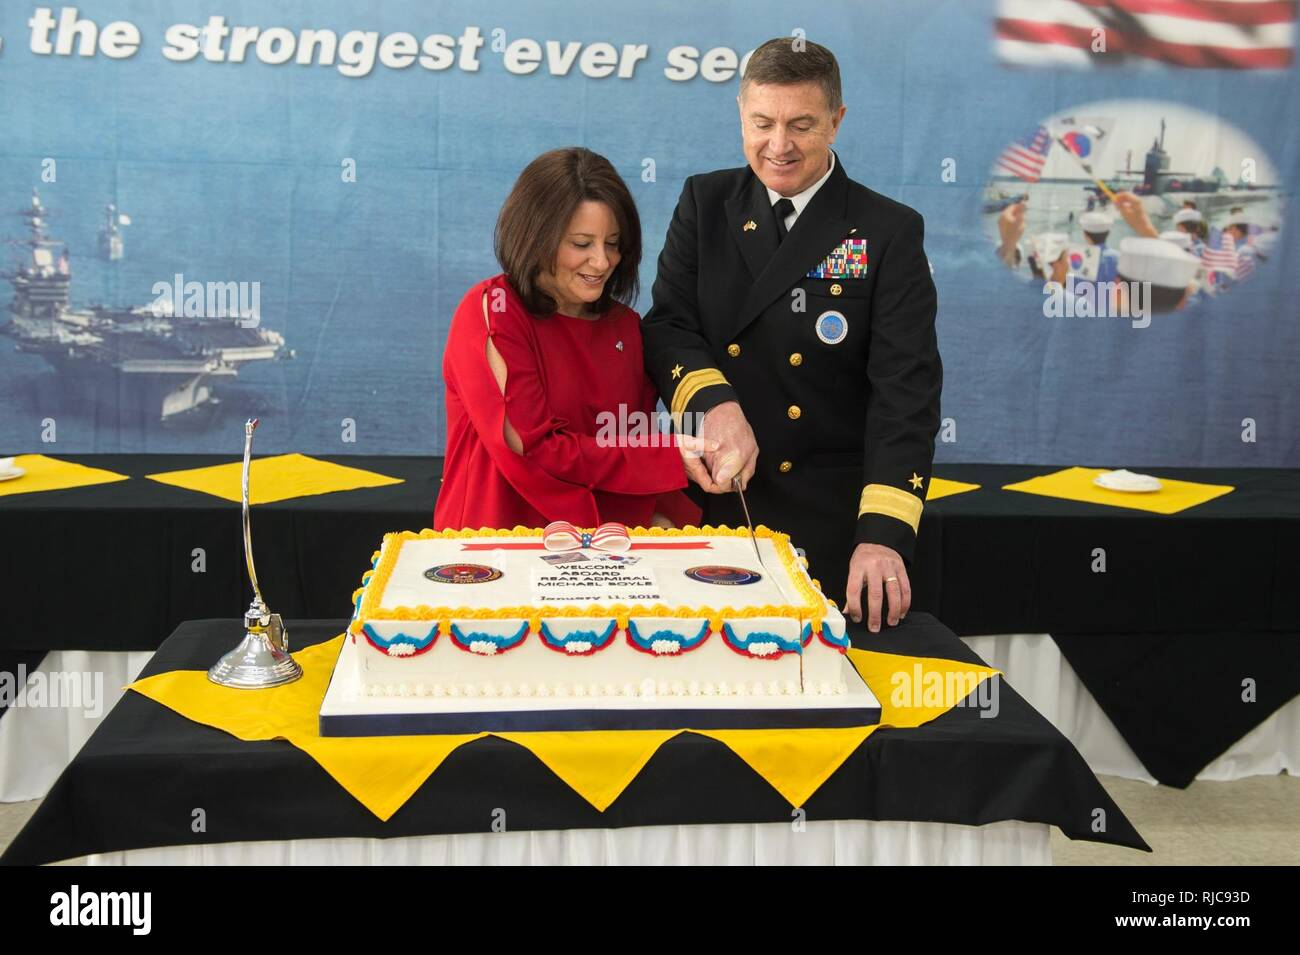 Busan, Republic of Korea (Jan. 11, 2018) Rear Adm. Michael E. Boyle, commander, U.S. Naval Forces Korea, and his wife, Tracy, cut a cake after the change of command ceremony at CNFK headquarters. Boyle relieved Rear Adm. Brad Cooper, becoming CNFK's 36th commander. Stock Photo